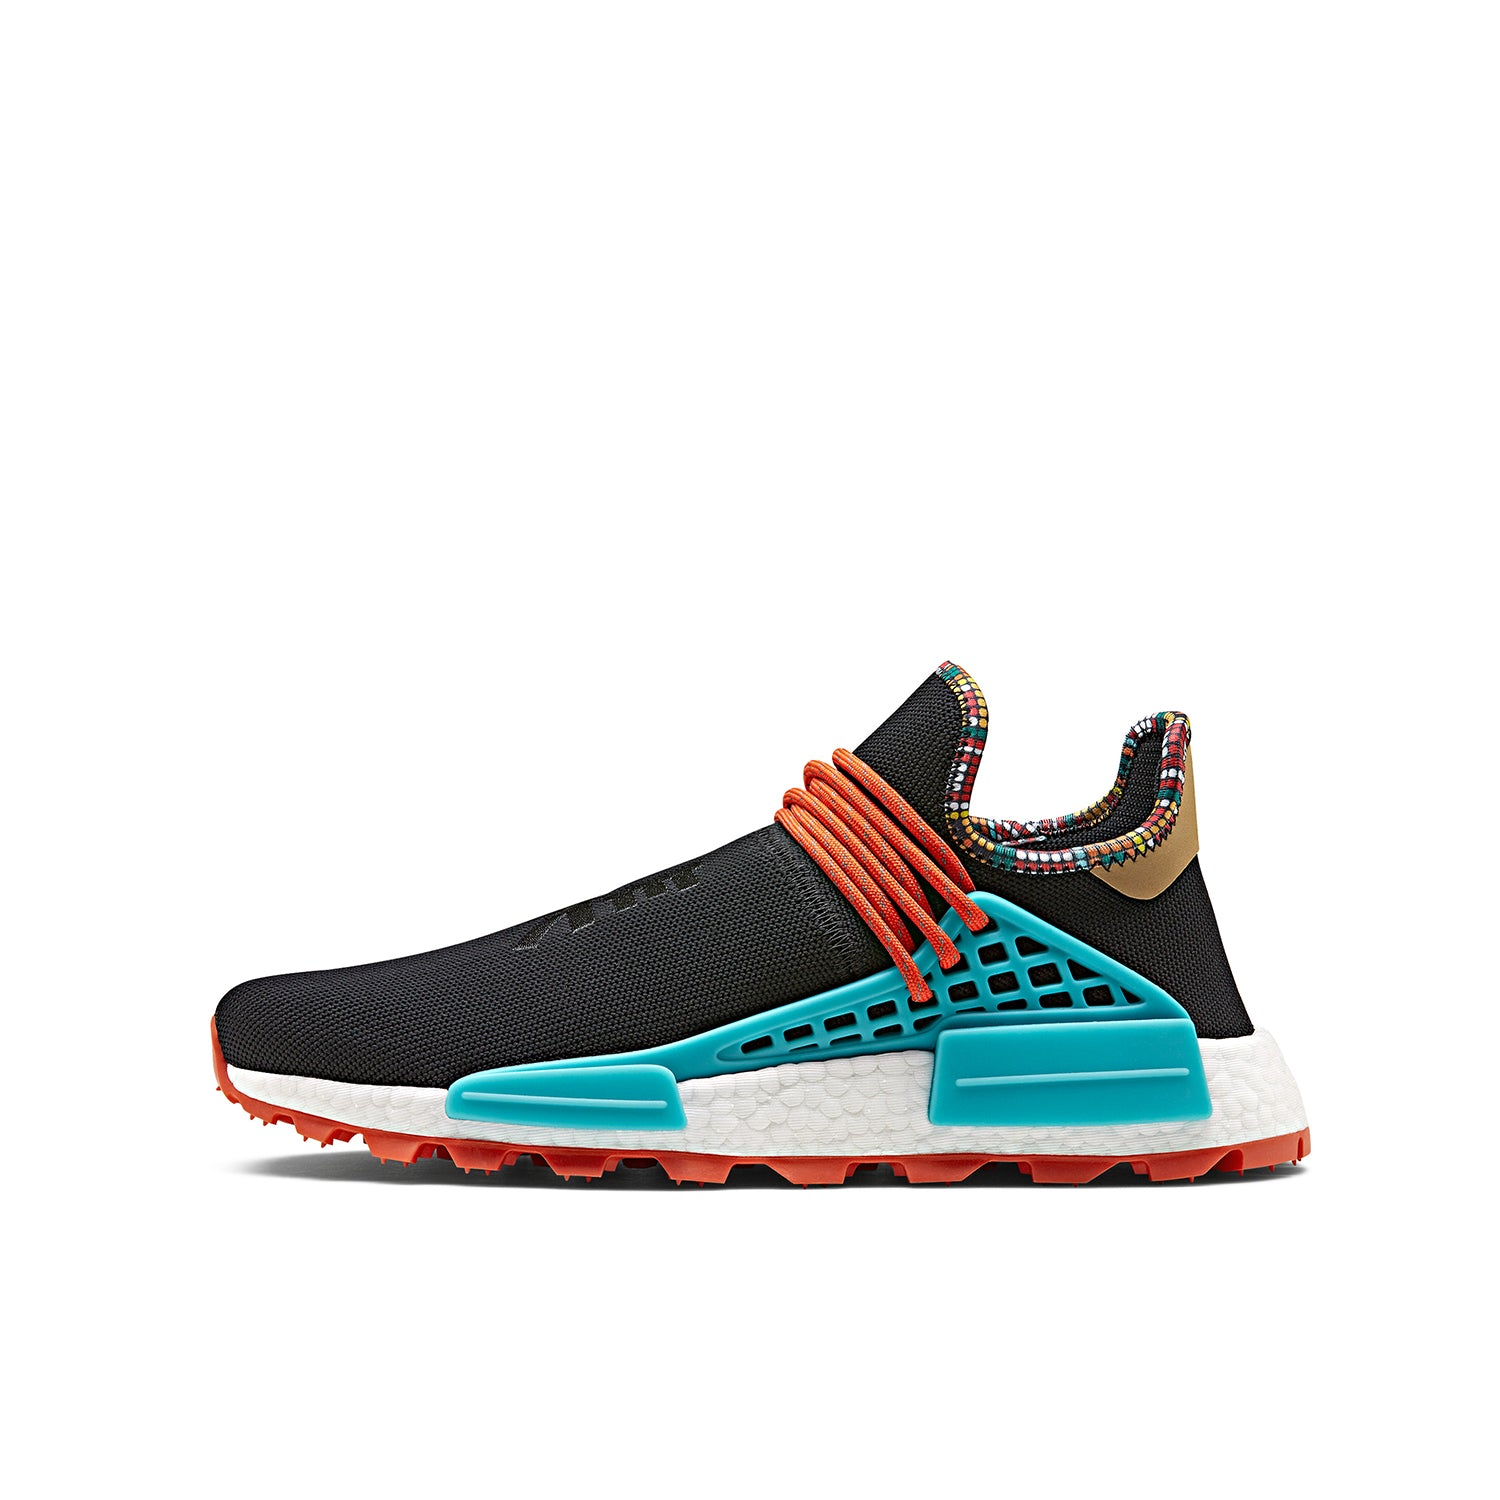 09b40a2a9 adidas Originals x Pharrell Williams  INSPIRATION  Solar HU NMD Core ...